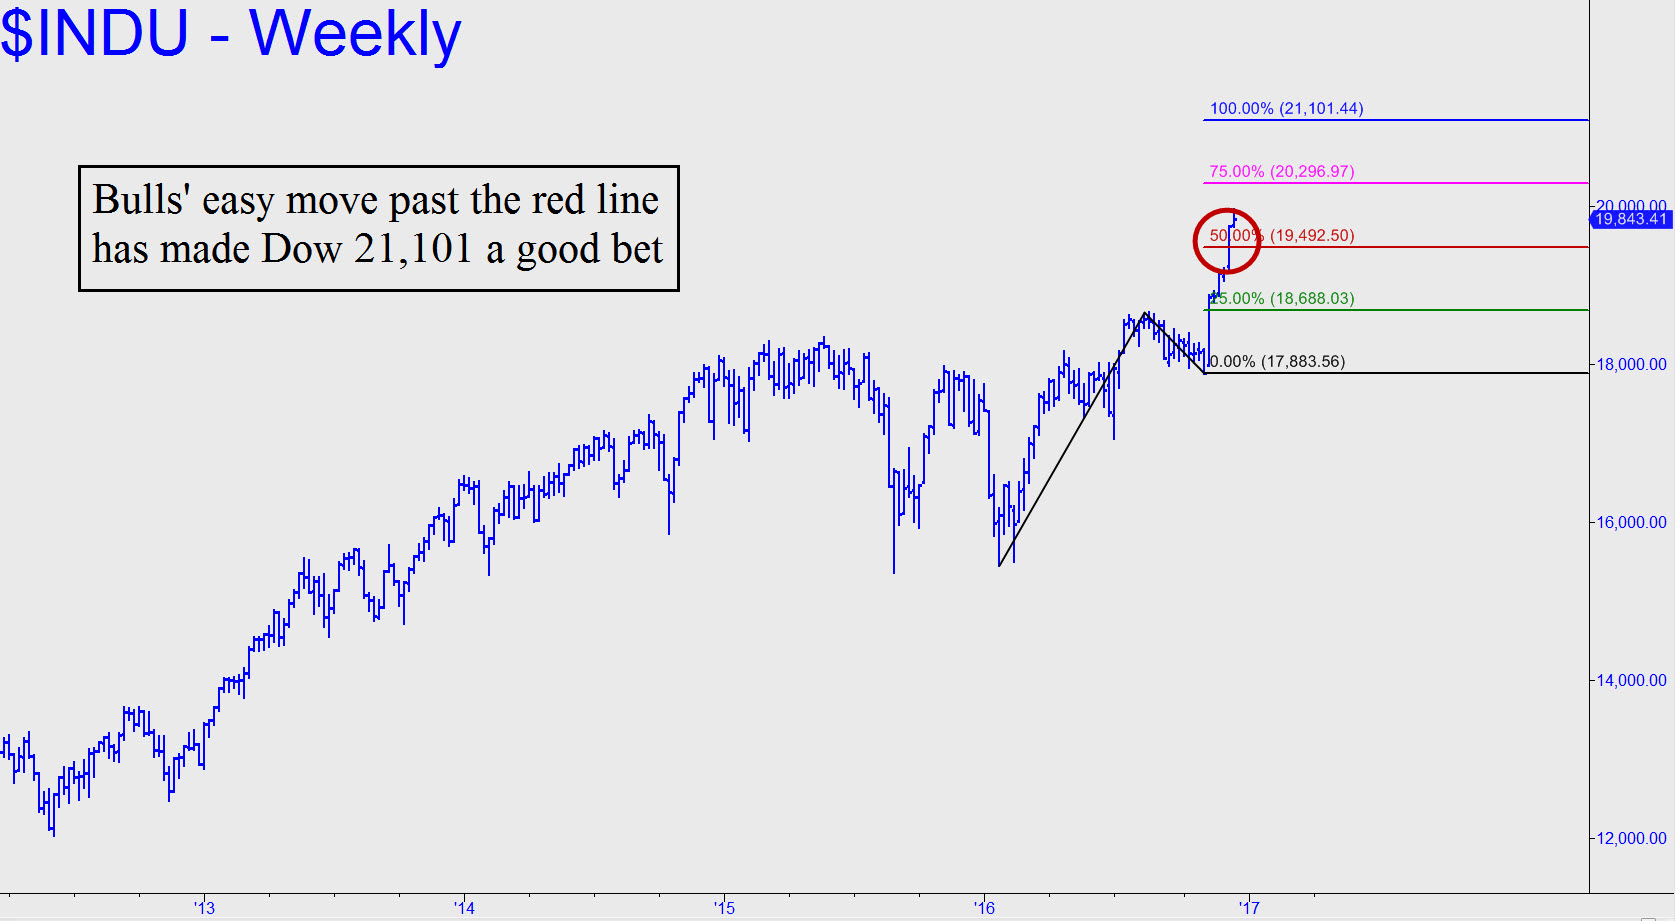 http://www.rickackerman.com/wp-content/uploads/2016/12/Bulls-easy-move-past.jpg